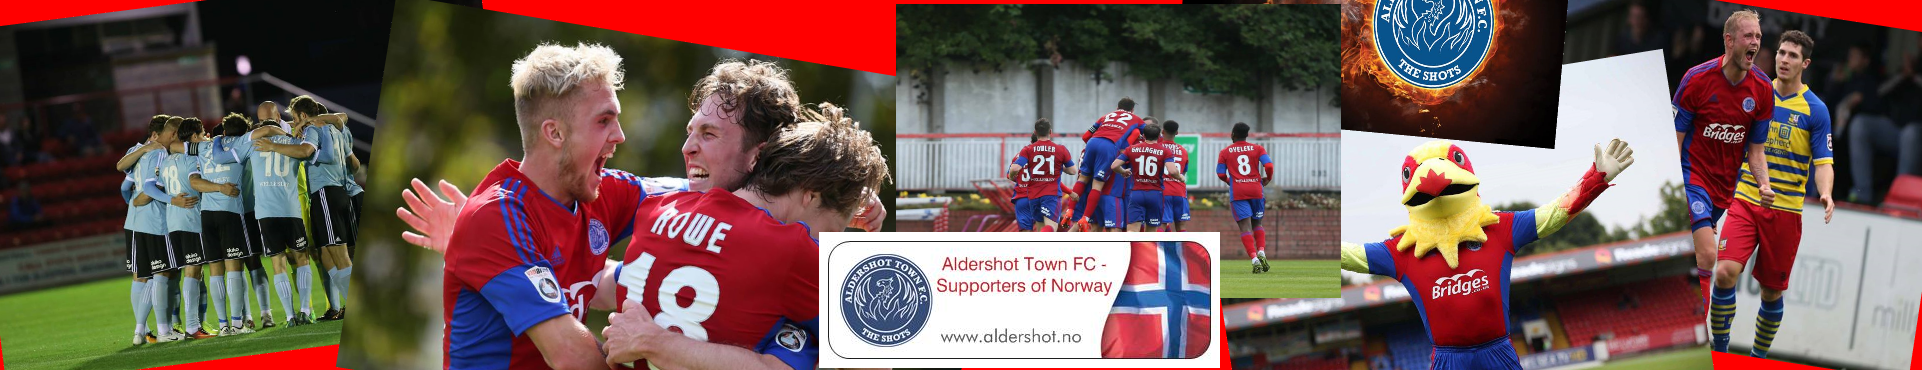 Aldershot Town FC – Supporters of Norway